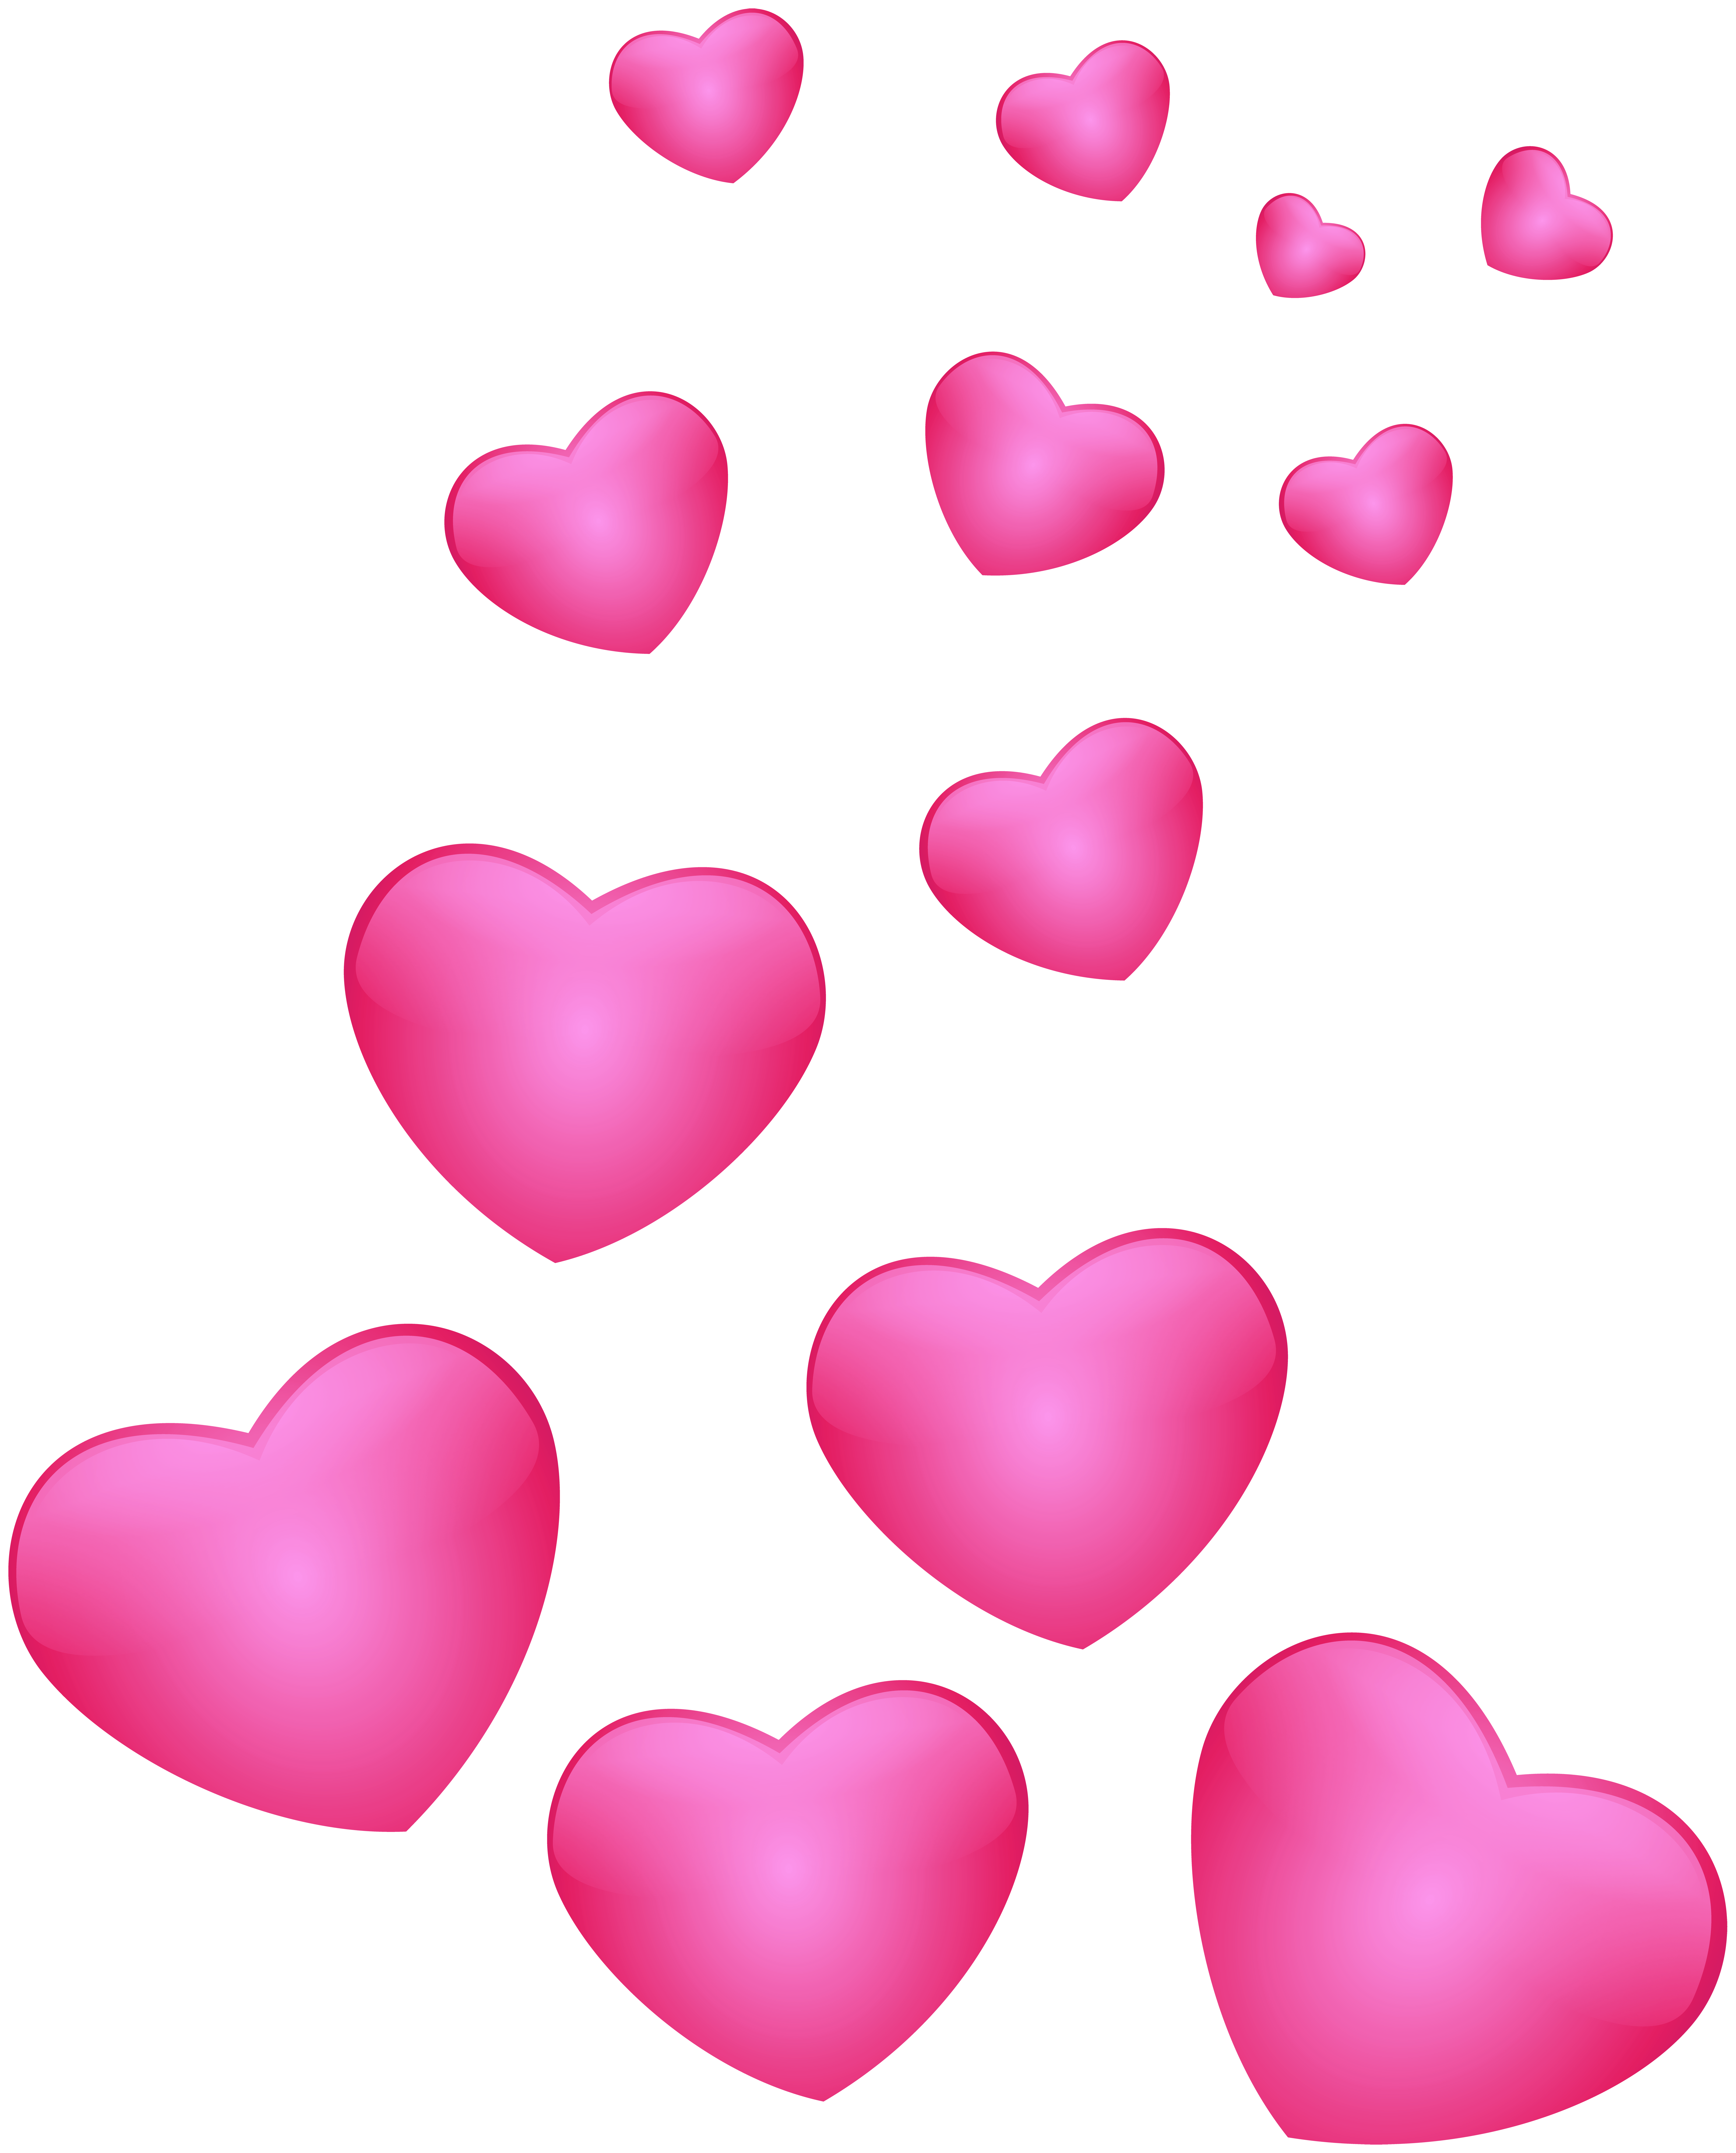 Heart pink png. Hearts clip art image